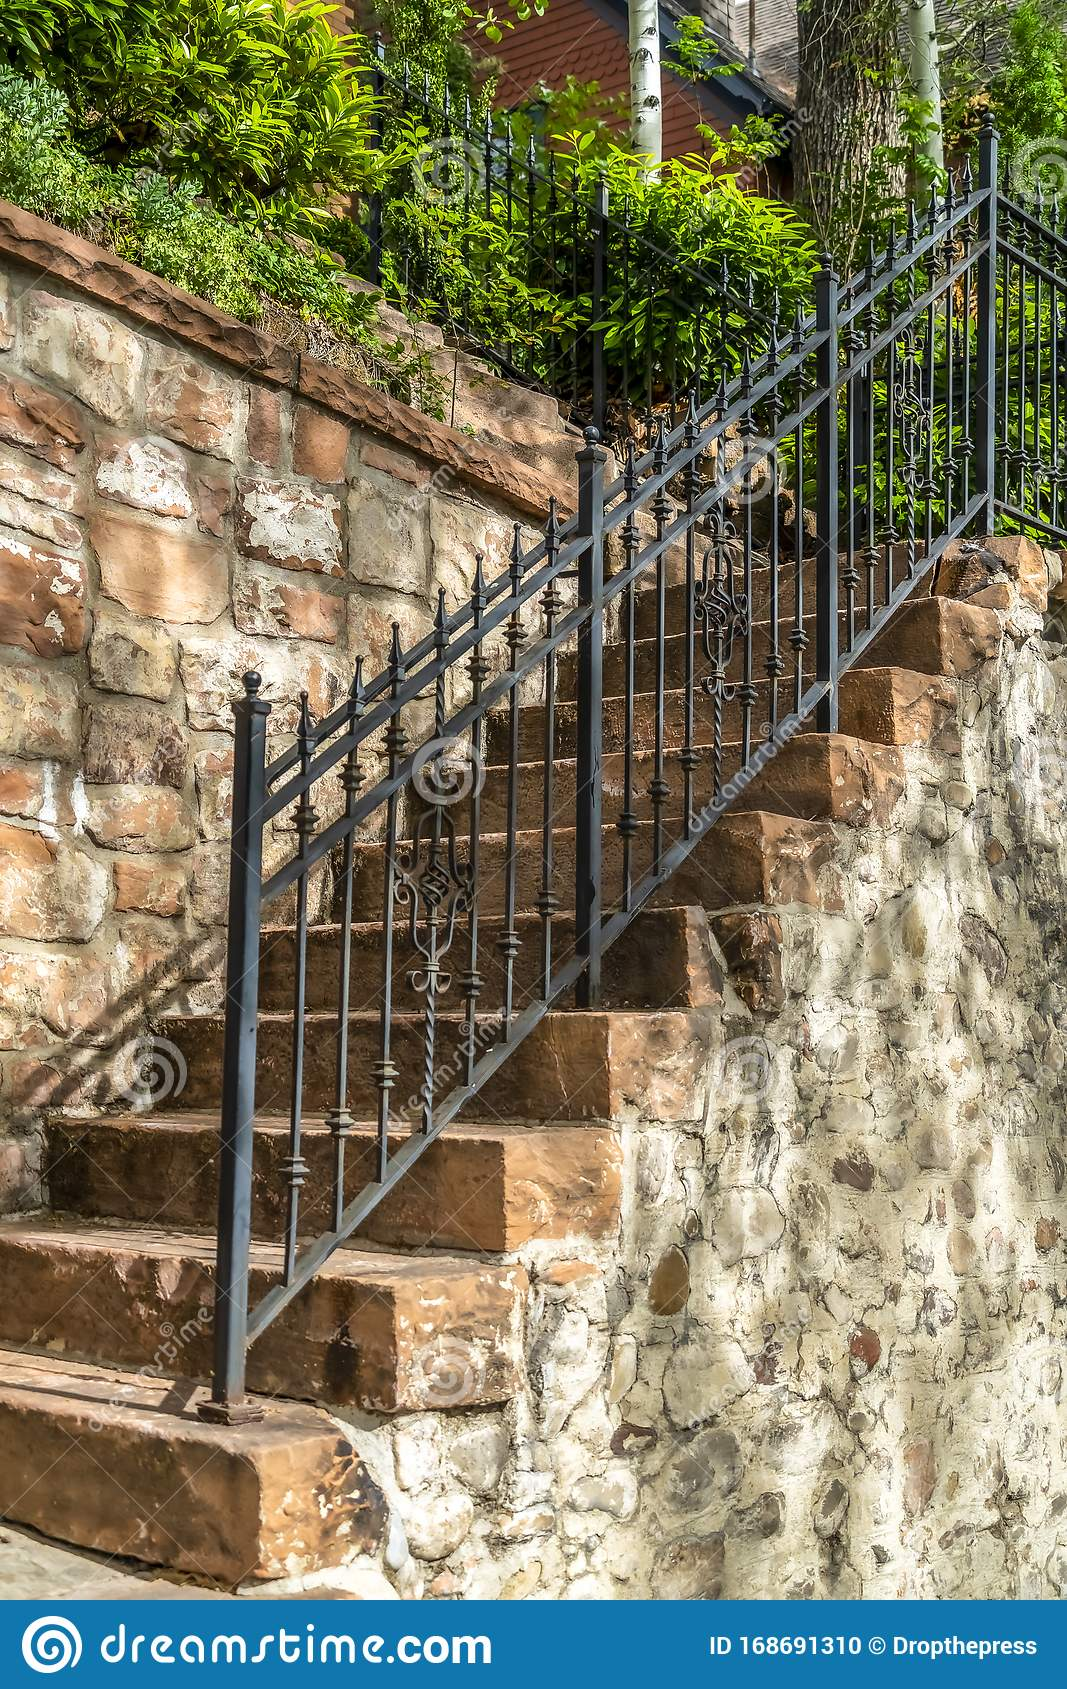 Outdoor Staircase With Stone Steps And Black Metal Railing Against A Fence Stock Photo Image Of Sunlight Green 168691310